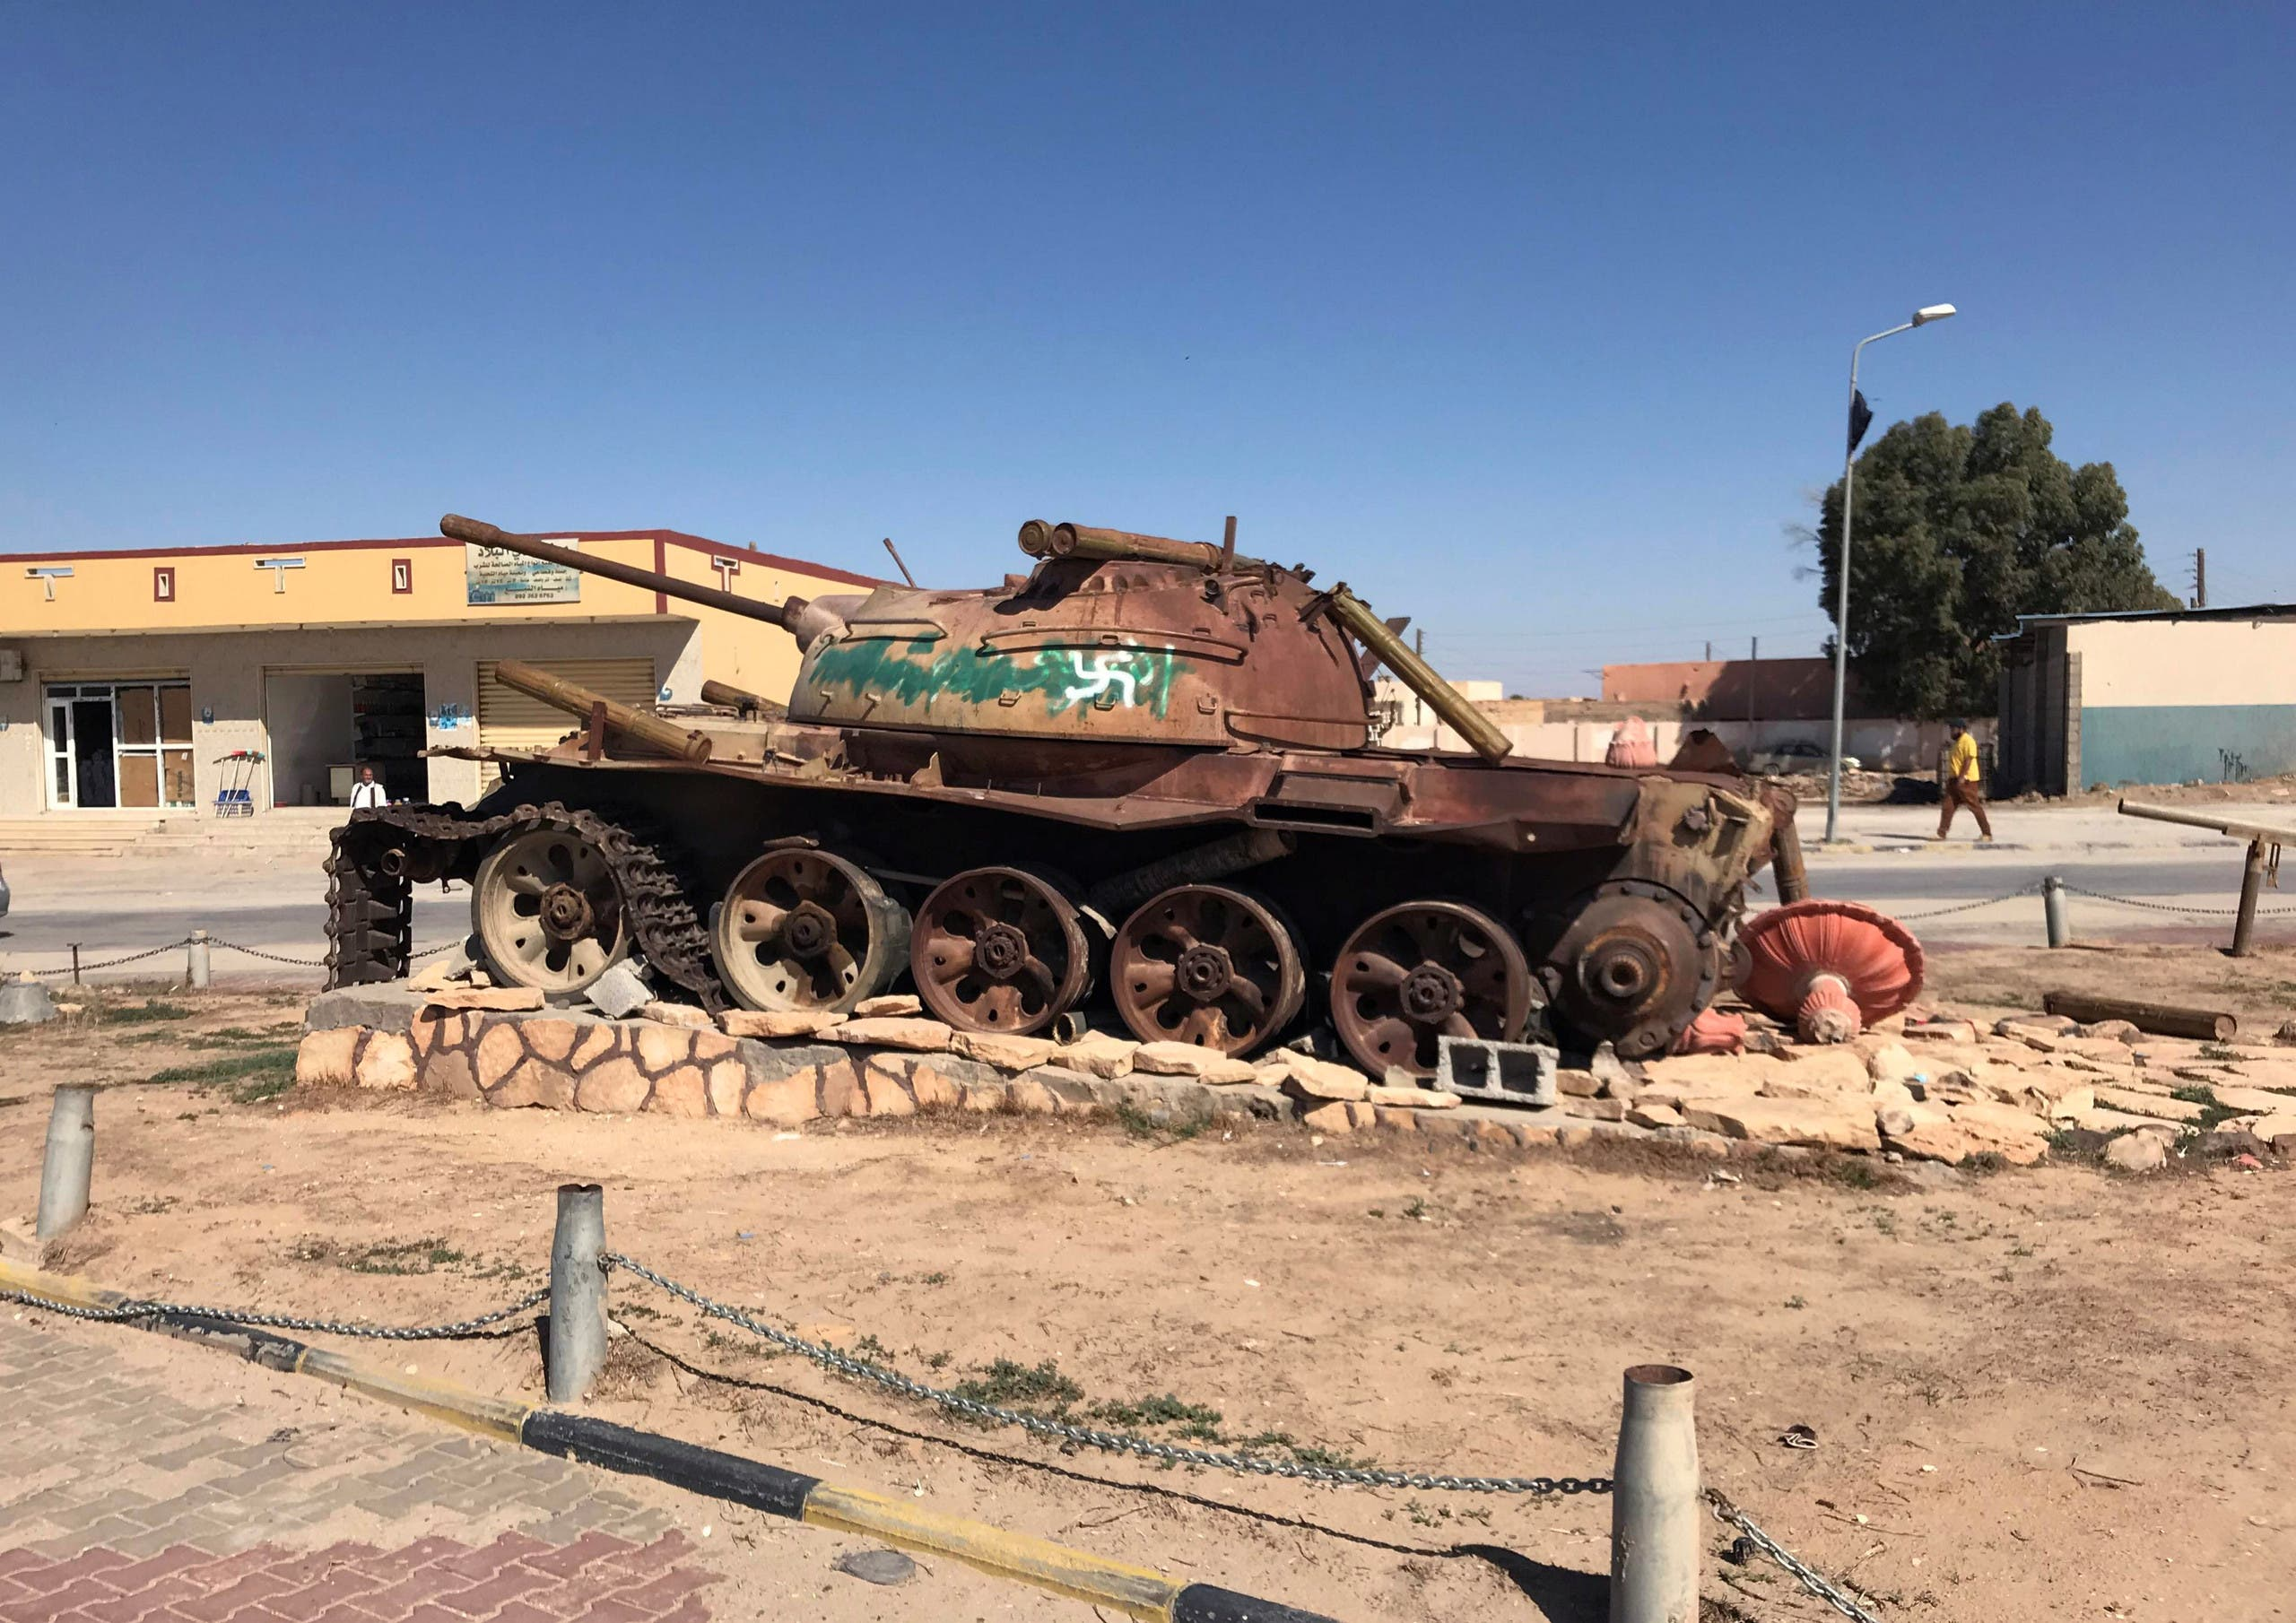 A military vehicle stands in the city of Bani Walid, Libya October 29, 2017. Picture taken October 29, 2017. (Reuters)